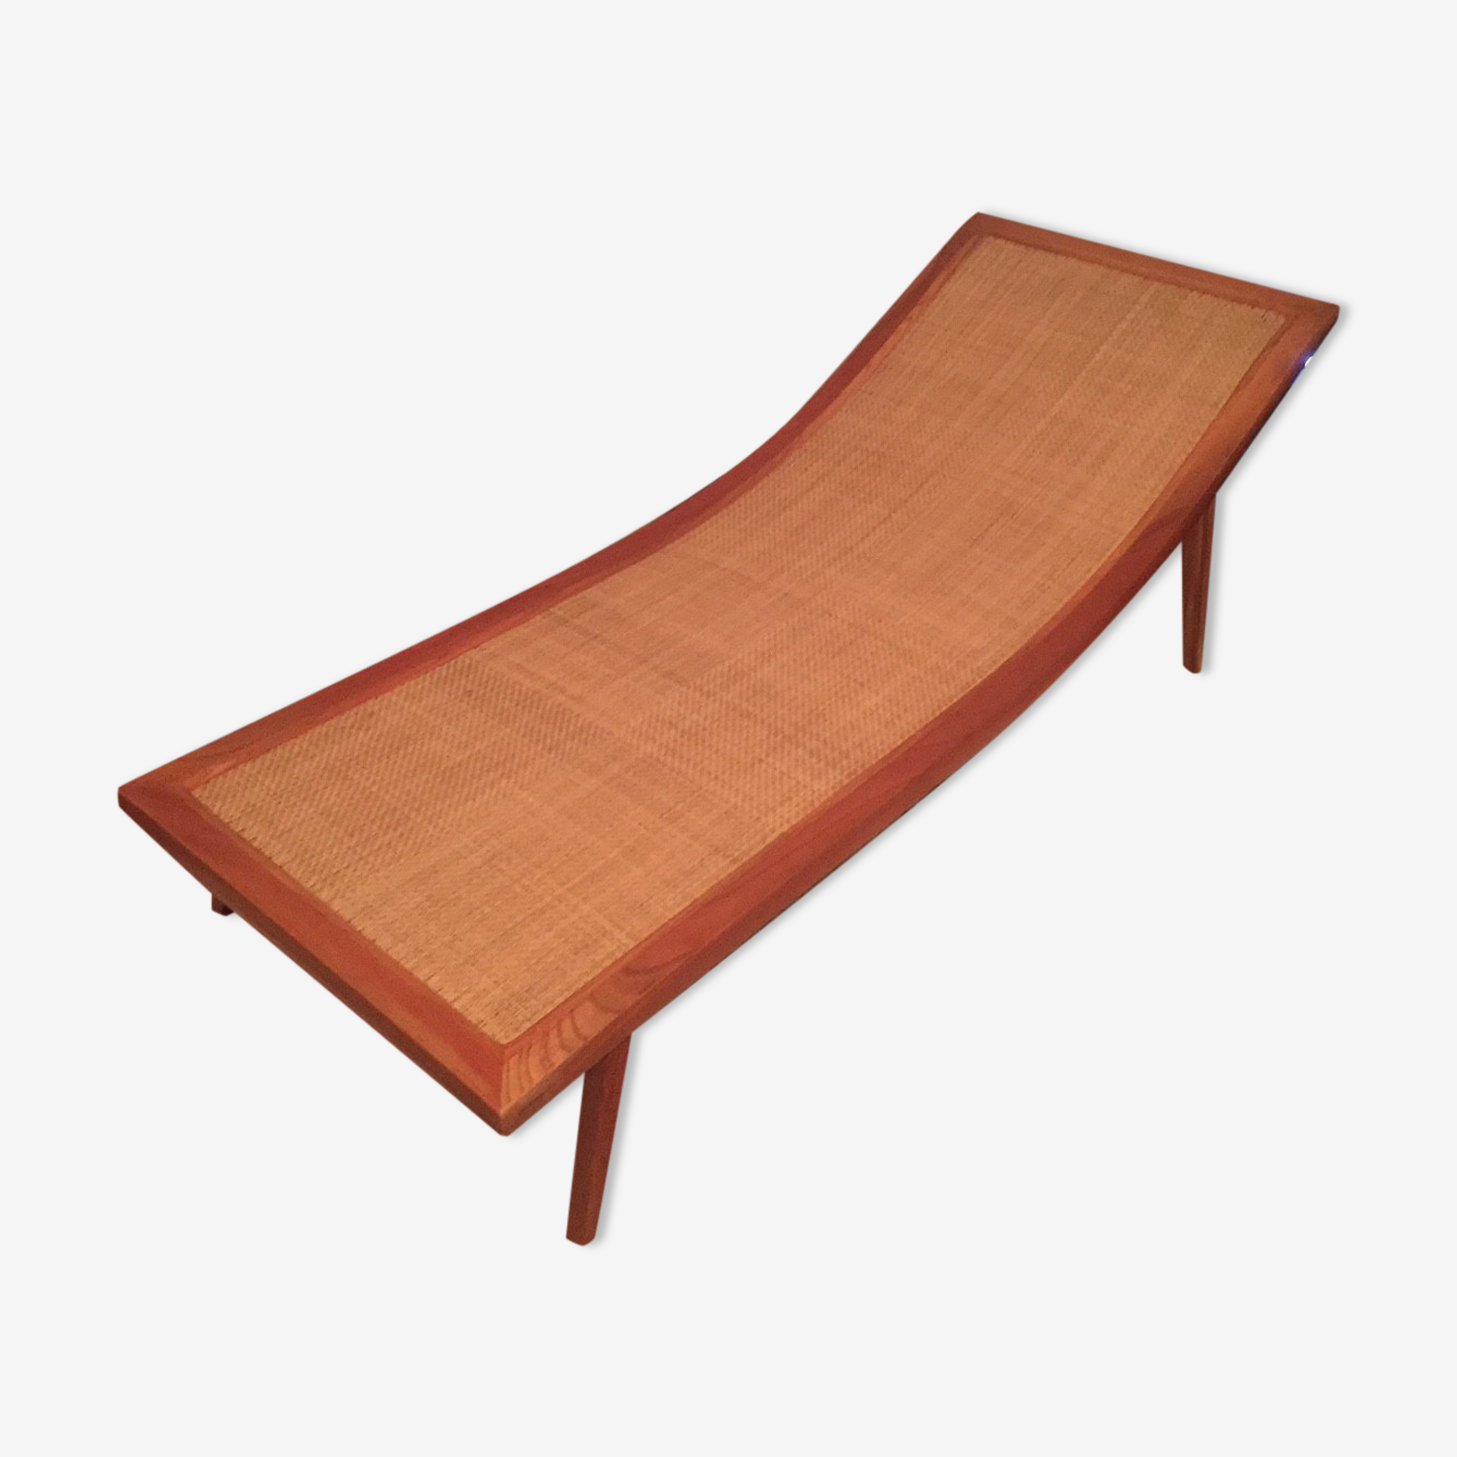 Asian seat in wood and wicker